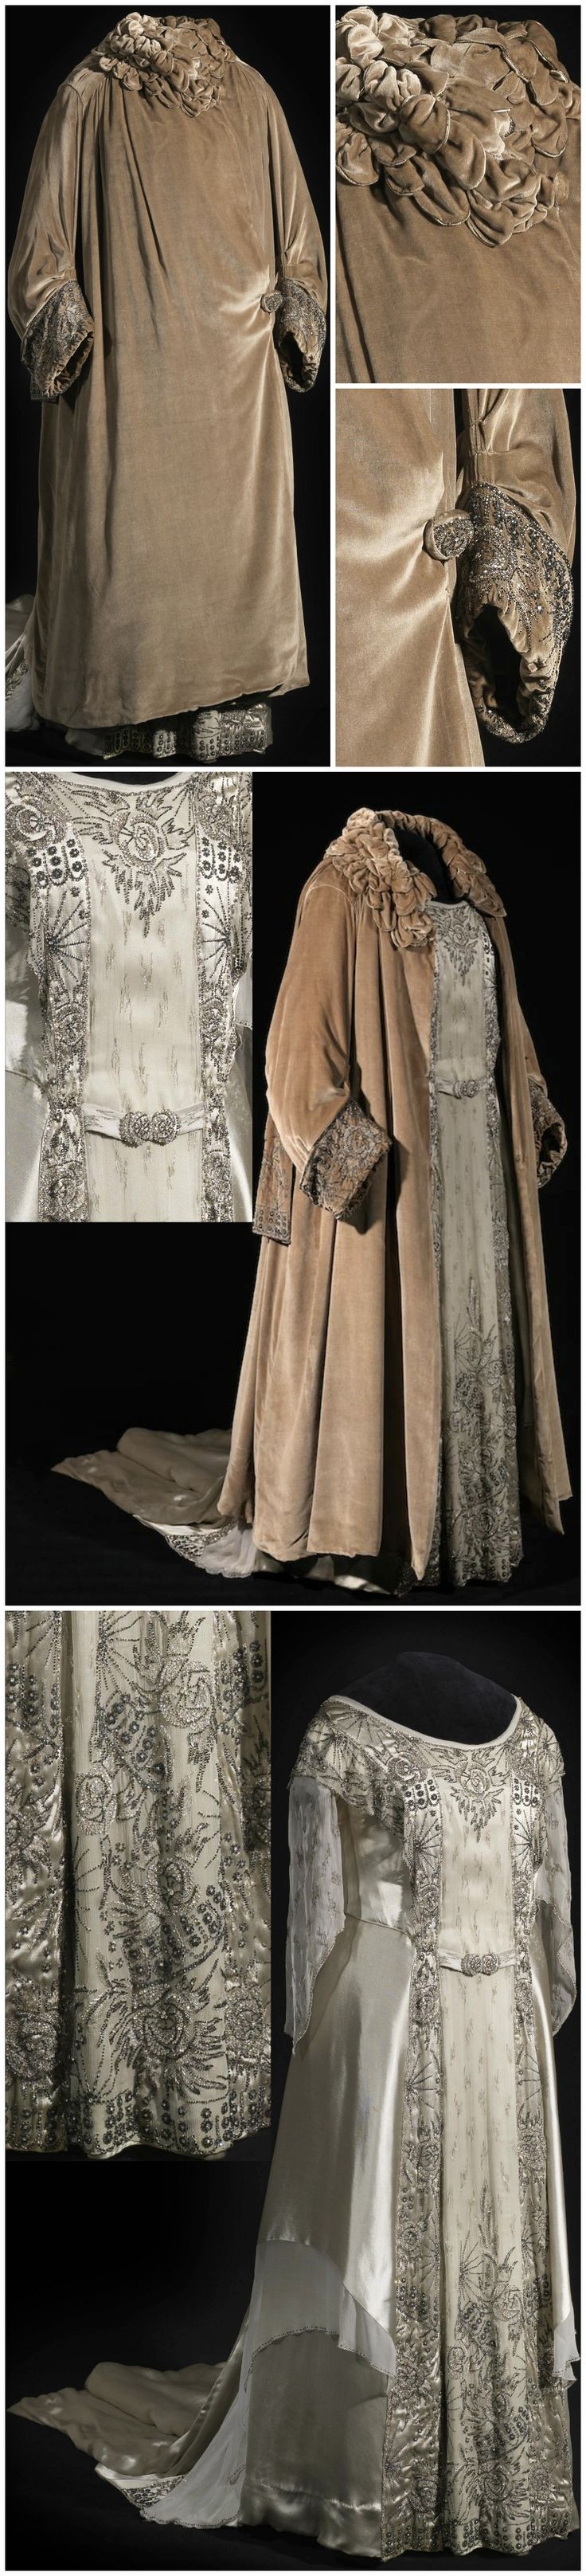 Gala dress and coat, by Premet, c. 1923-29, Het Loo Palace (on loan from the Royal Collections, The Hague). Photos: Stef Verstraaten. Via Modemuze. Worn by Queen Emma of the Netherlands (née Princess of Waldeck and Pyrmont). Dress: silk (crepe, satin, voile), silver wire, rhinestones. Coat: silk (velvet), silver wire, rhinestones, wadding (?).